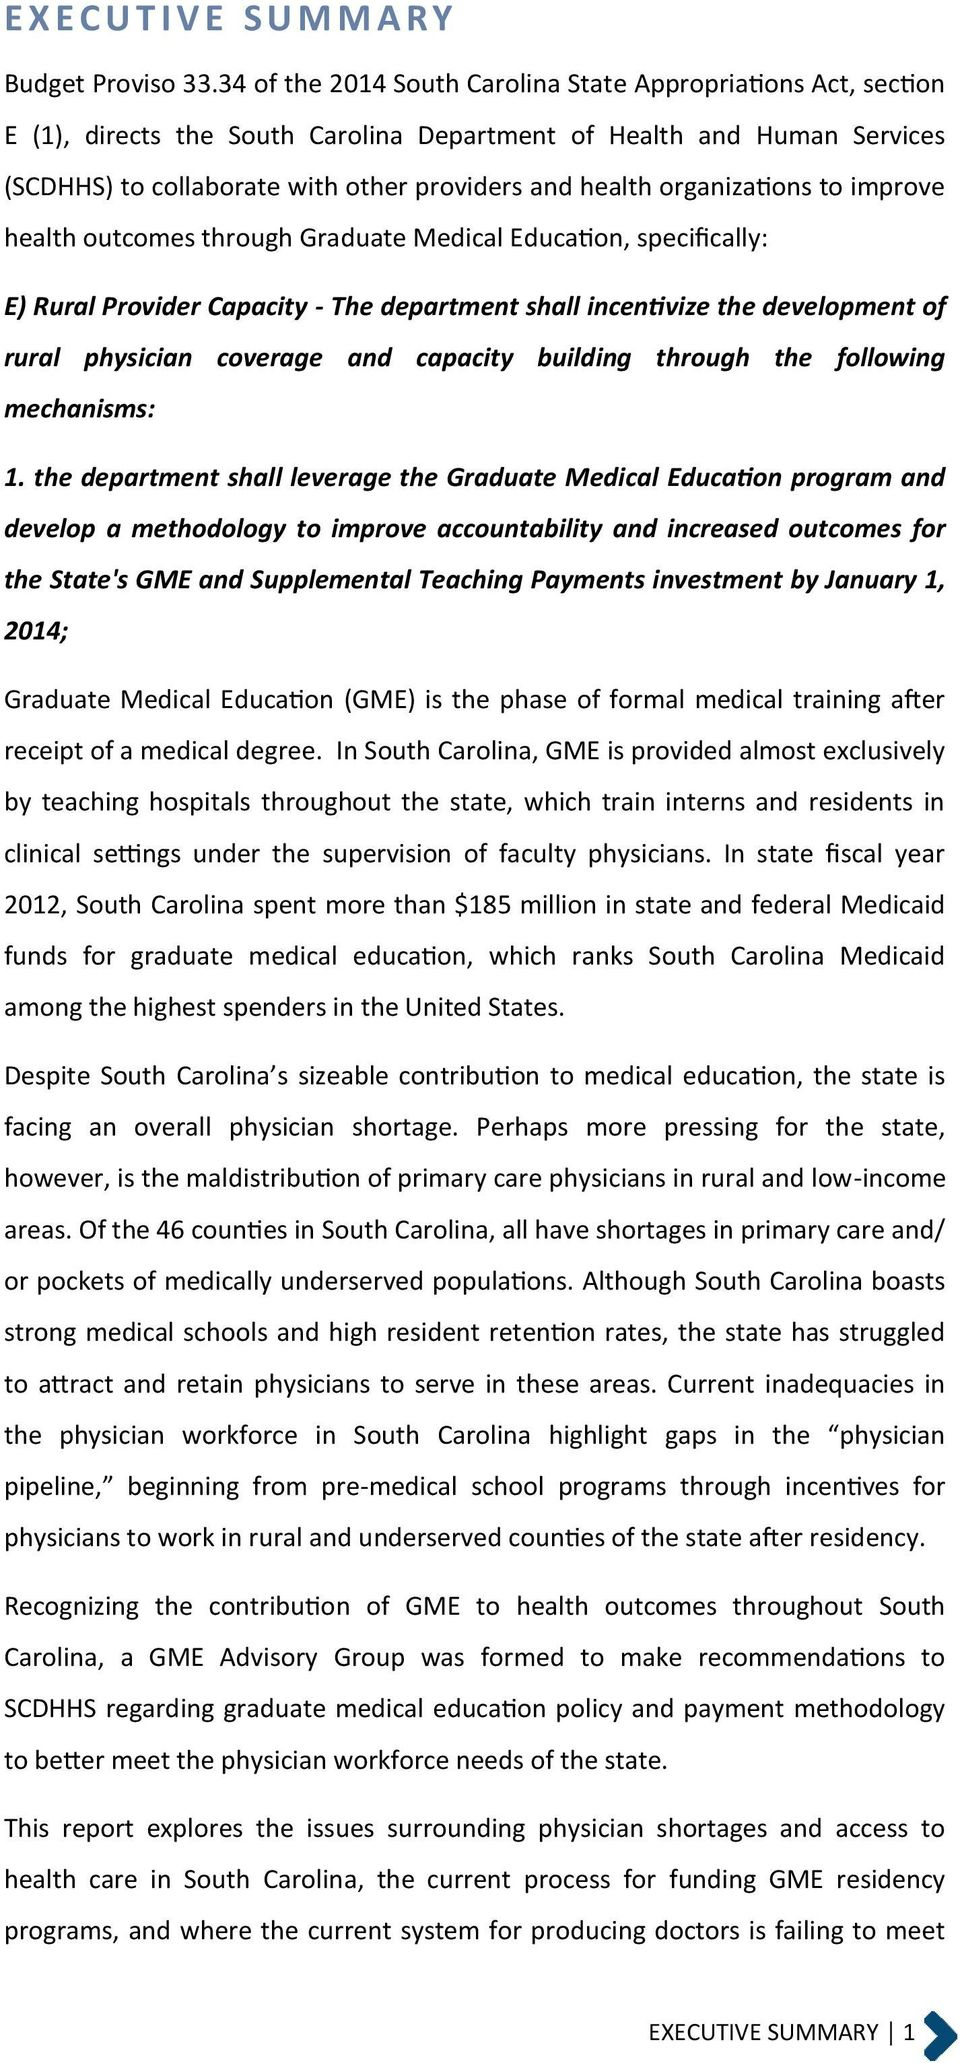 organizations to improve health outcomes through Graduate Medical Education, specifically: E) Rural Provider Capacity - The department shall incentivize the development of rural physician coverage